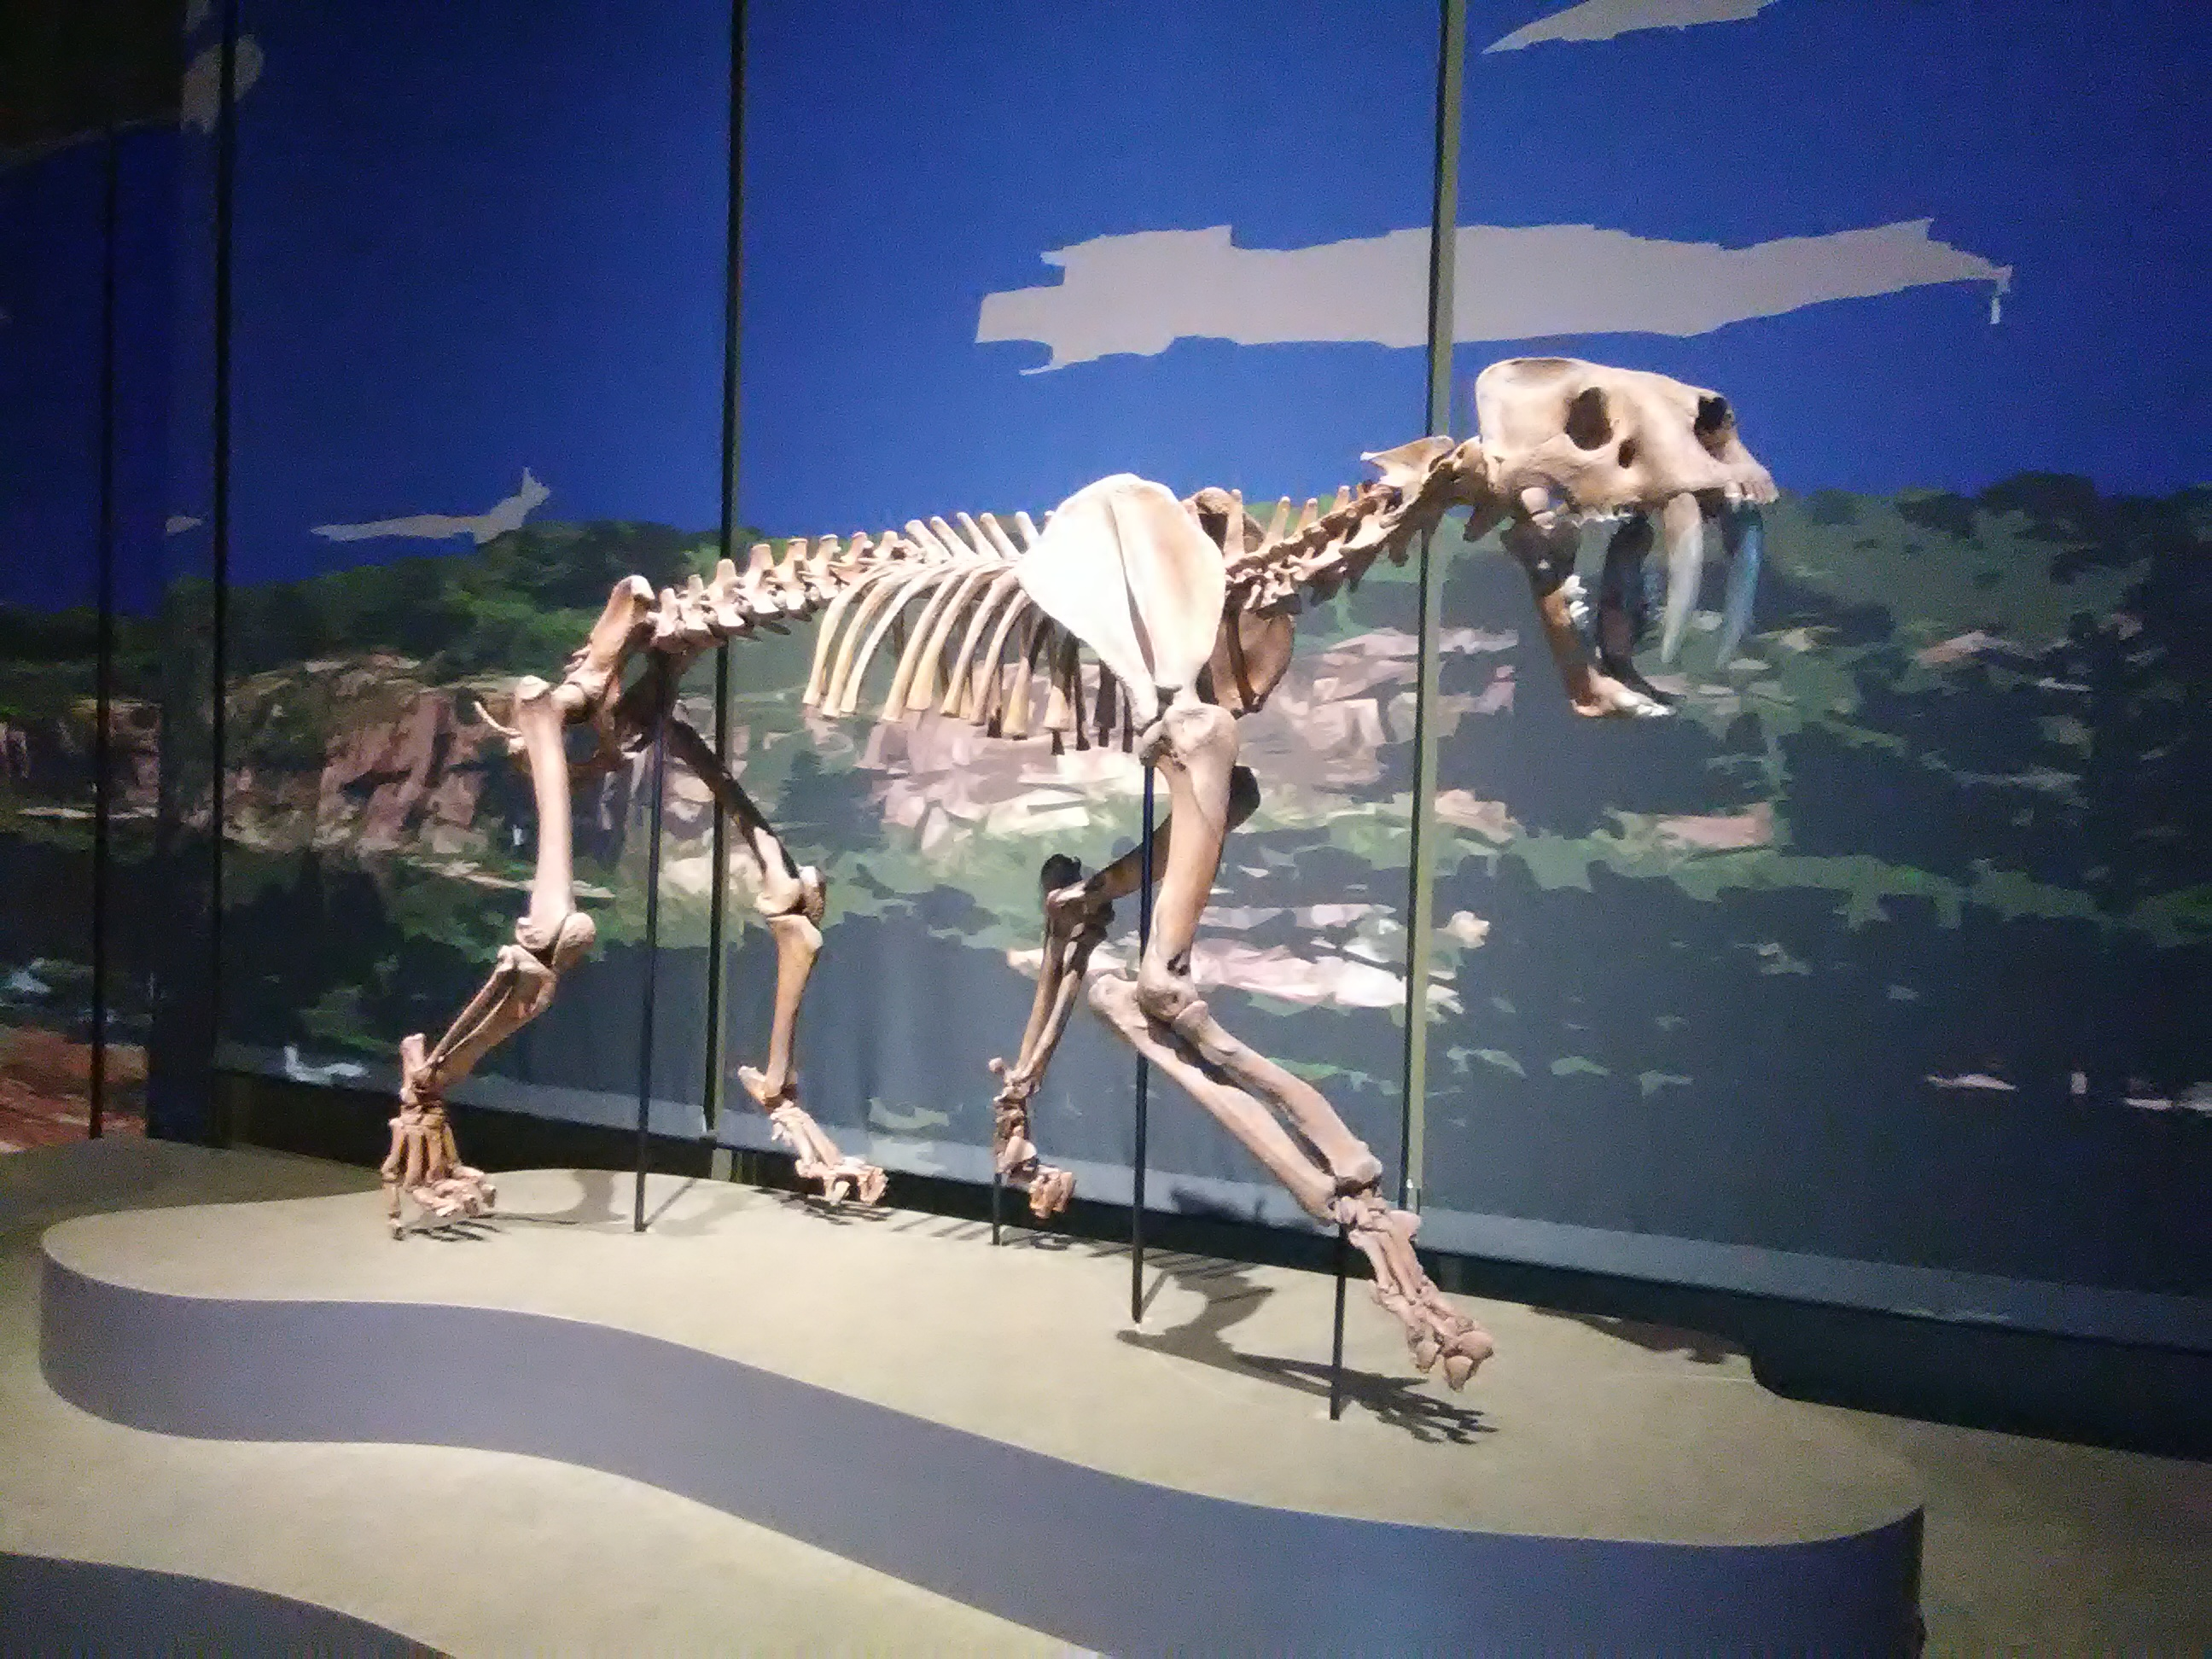 smilodon tellus science museum jul 2019.jpg